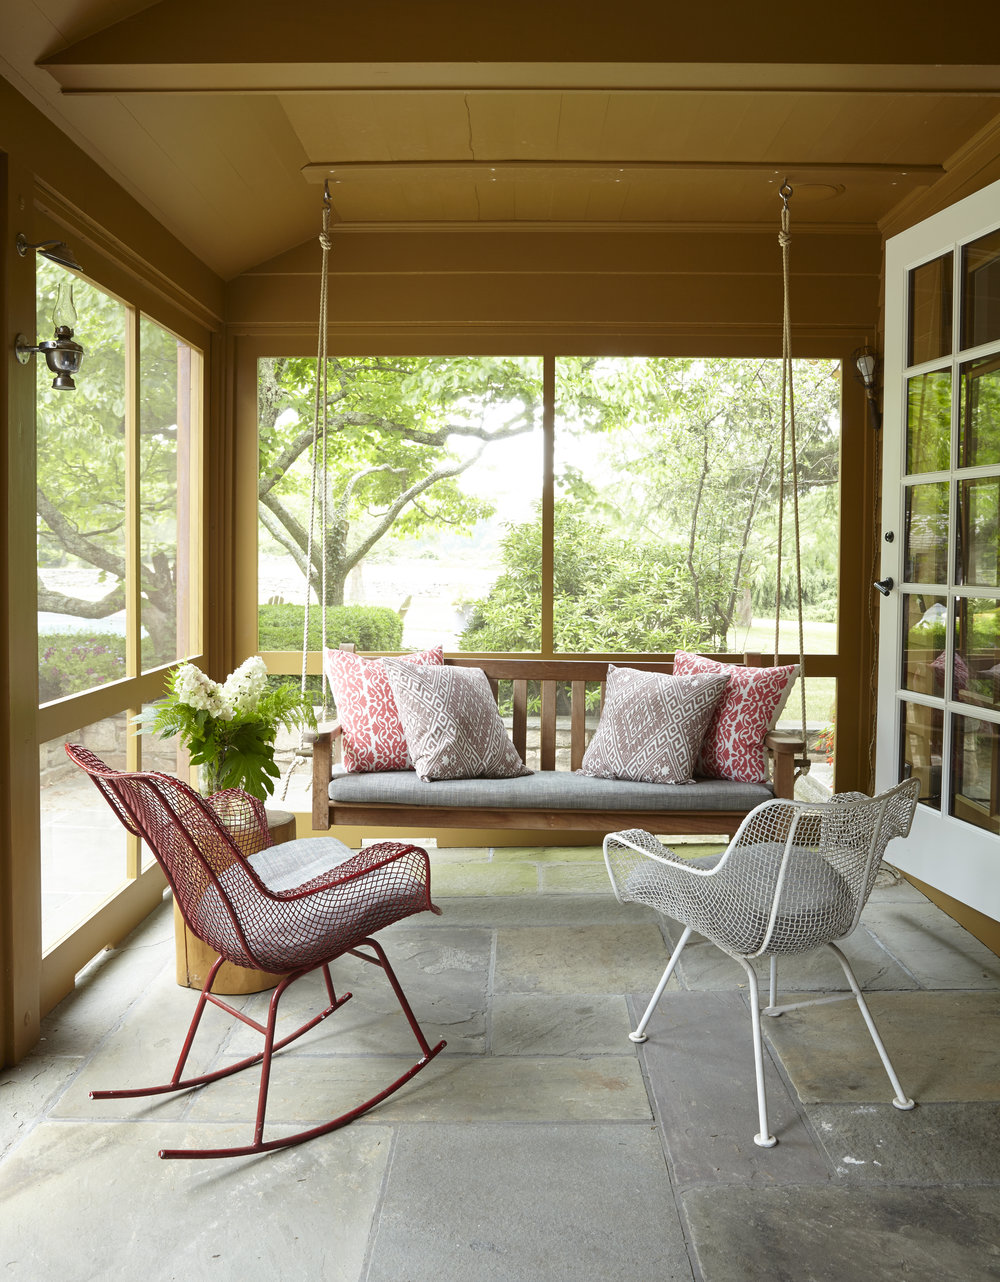 1097. Andrews-Merrill. Stoningtion. TS. PORCH 01.jpg